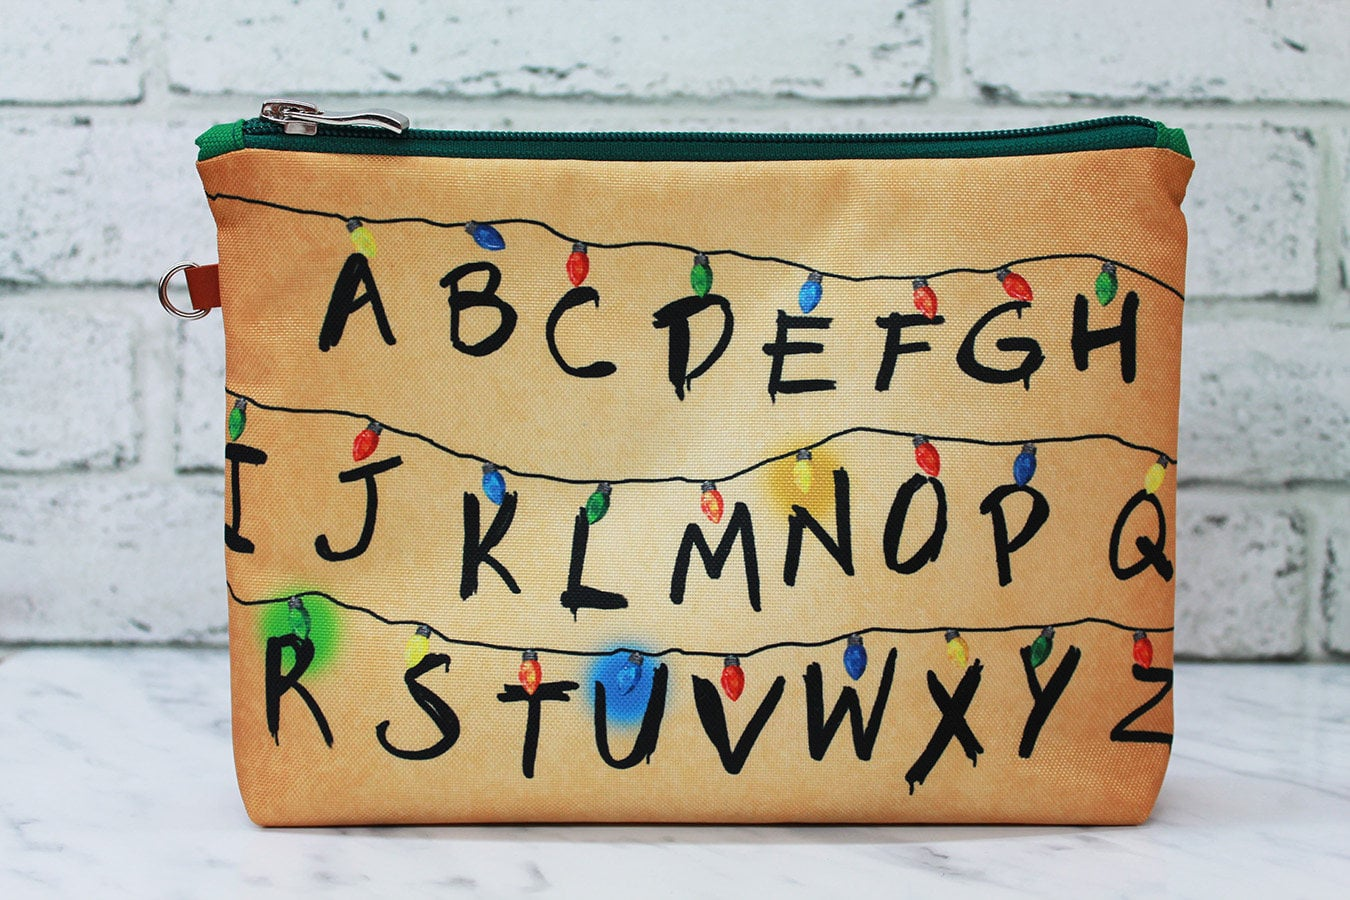 A Stranger Things Christmas.Stranger Things Christmas Lights Cosmetic Bag You Need Not